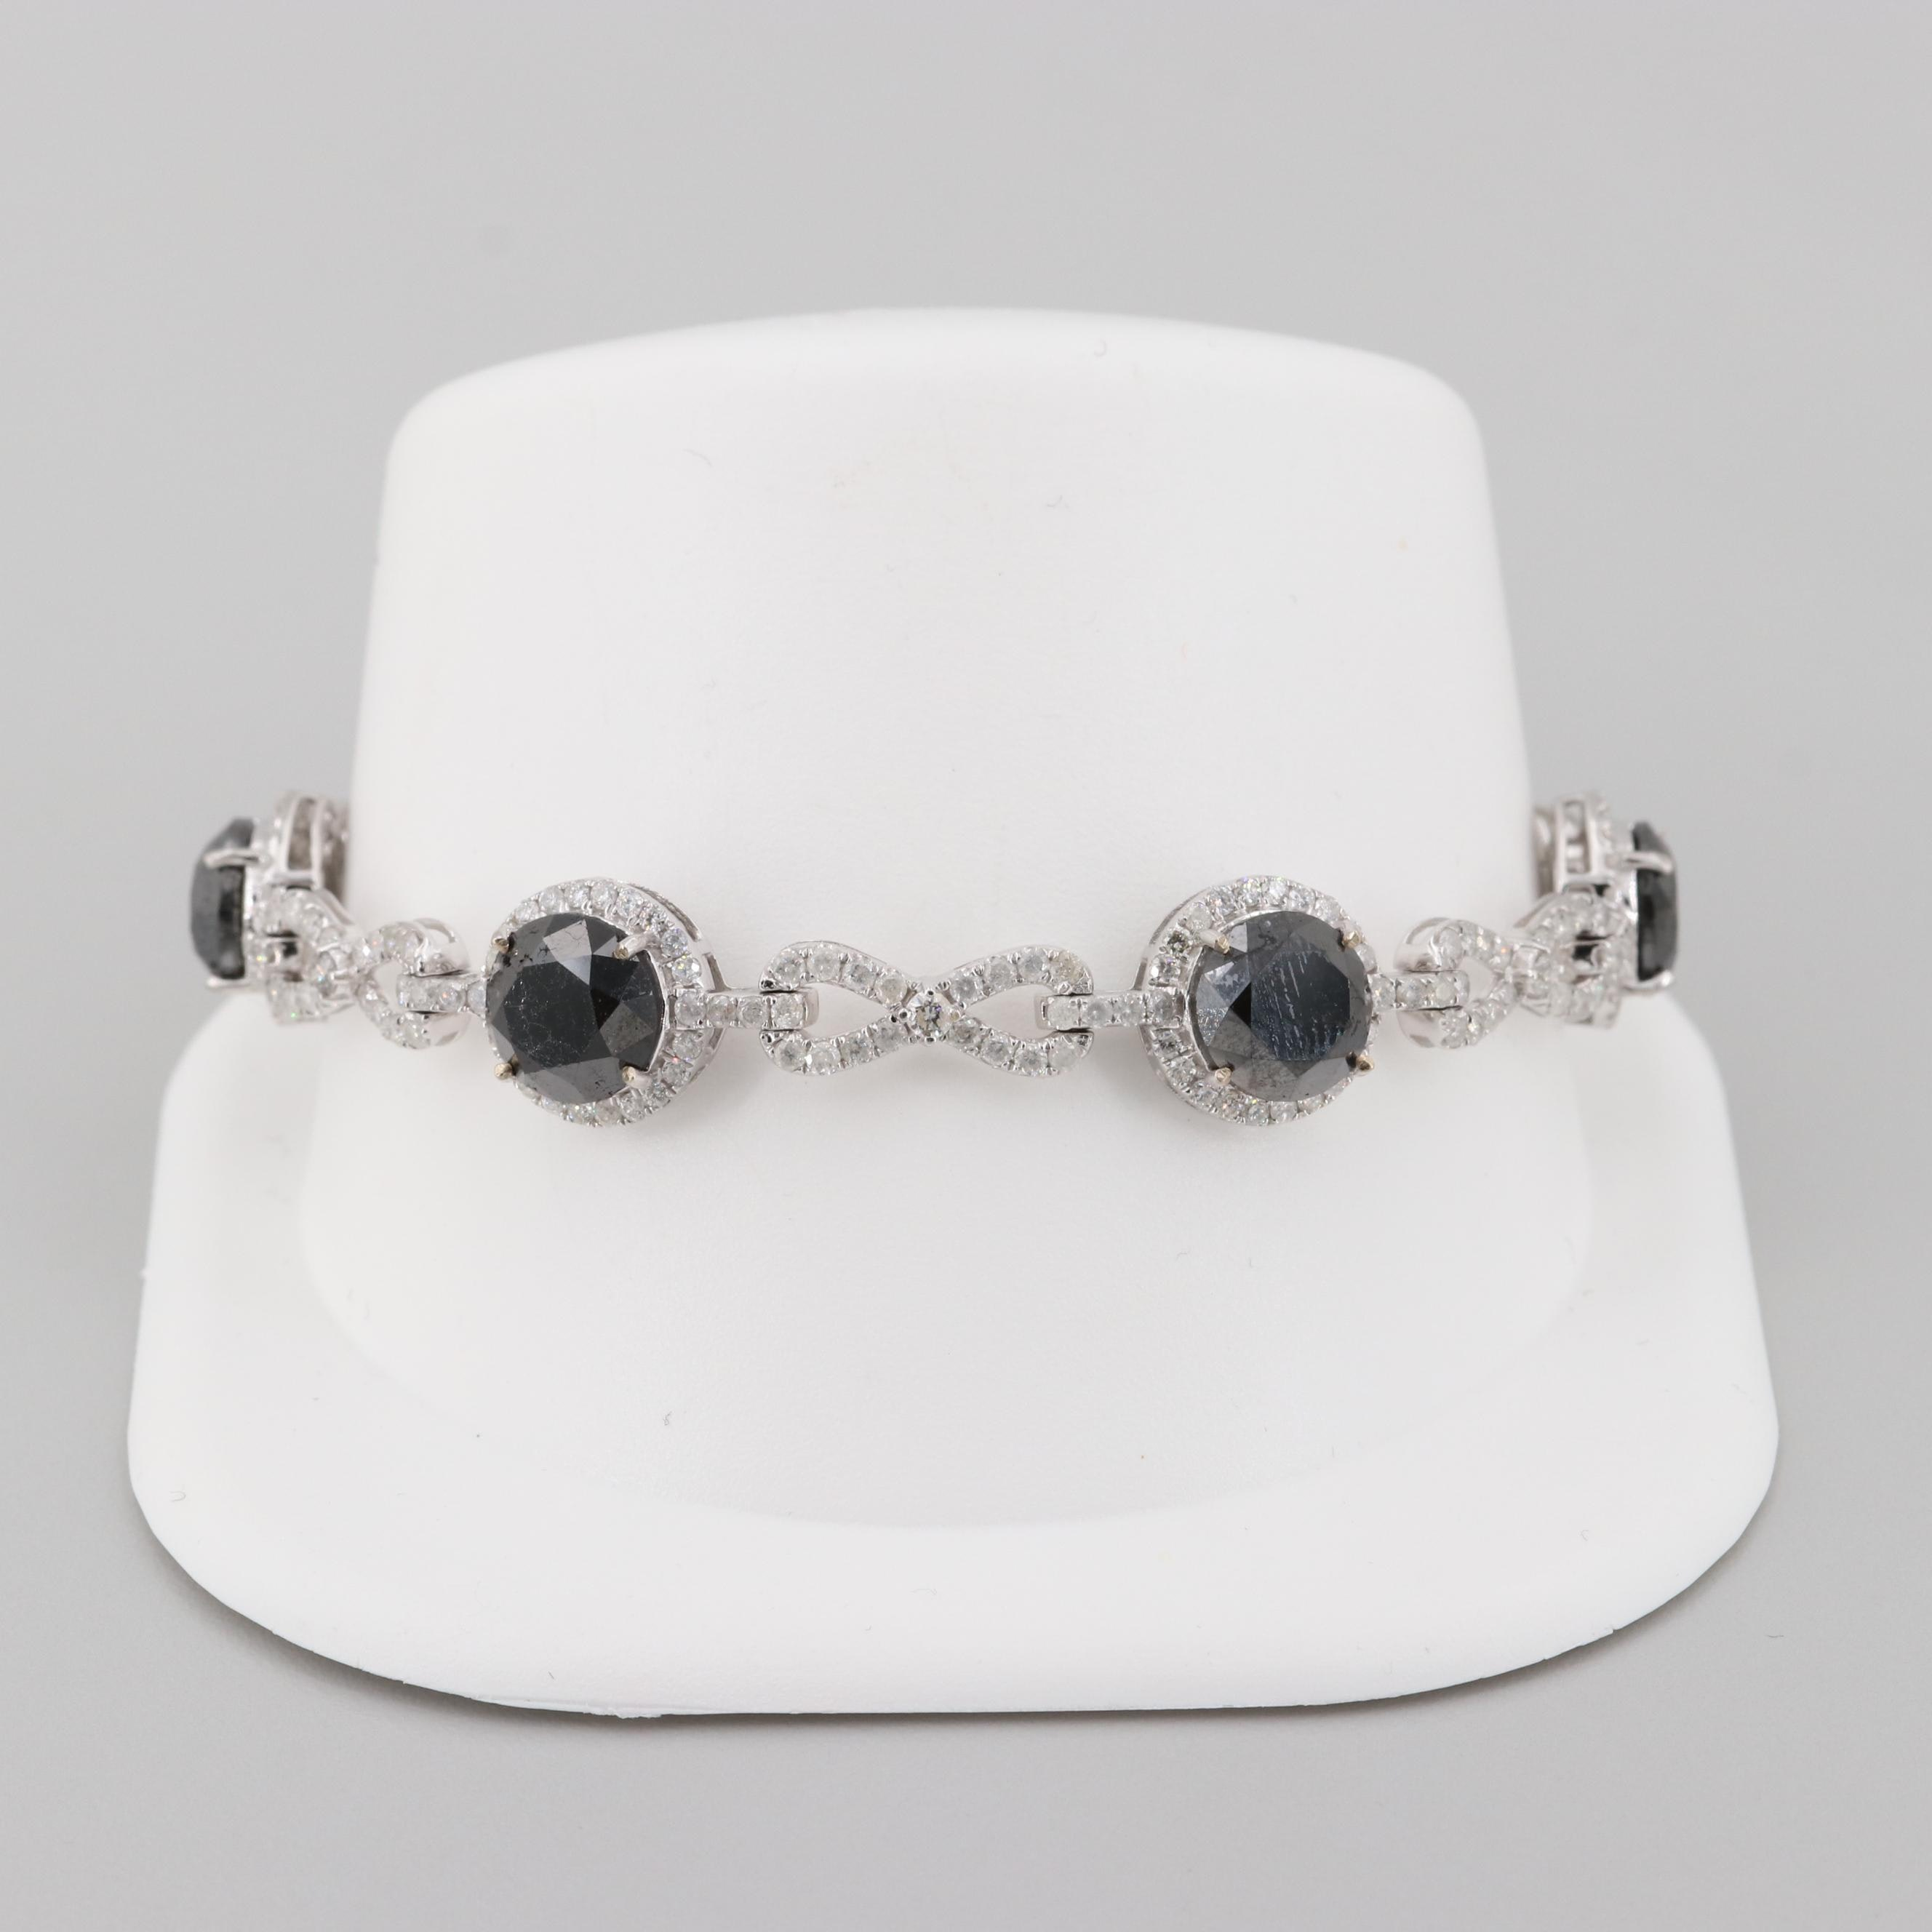 14K White Gold 18.92 CTW Diamond Bracelet Featuring Black Diamonds